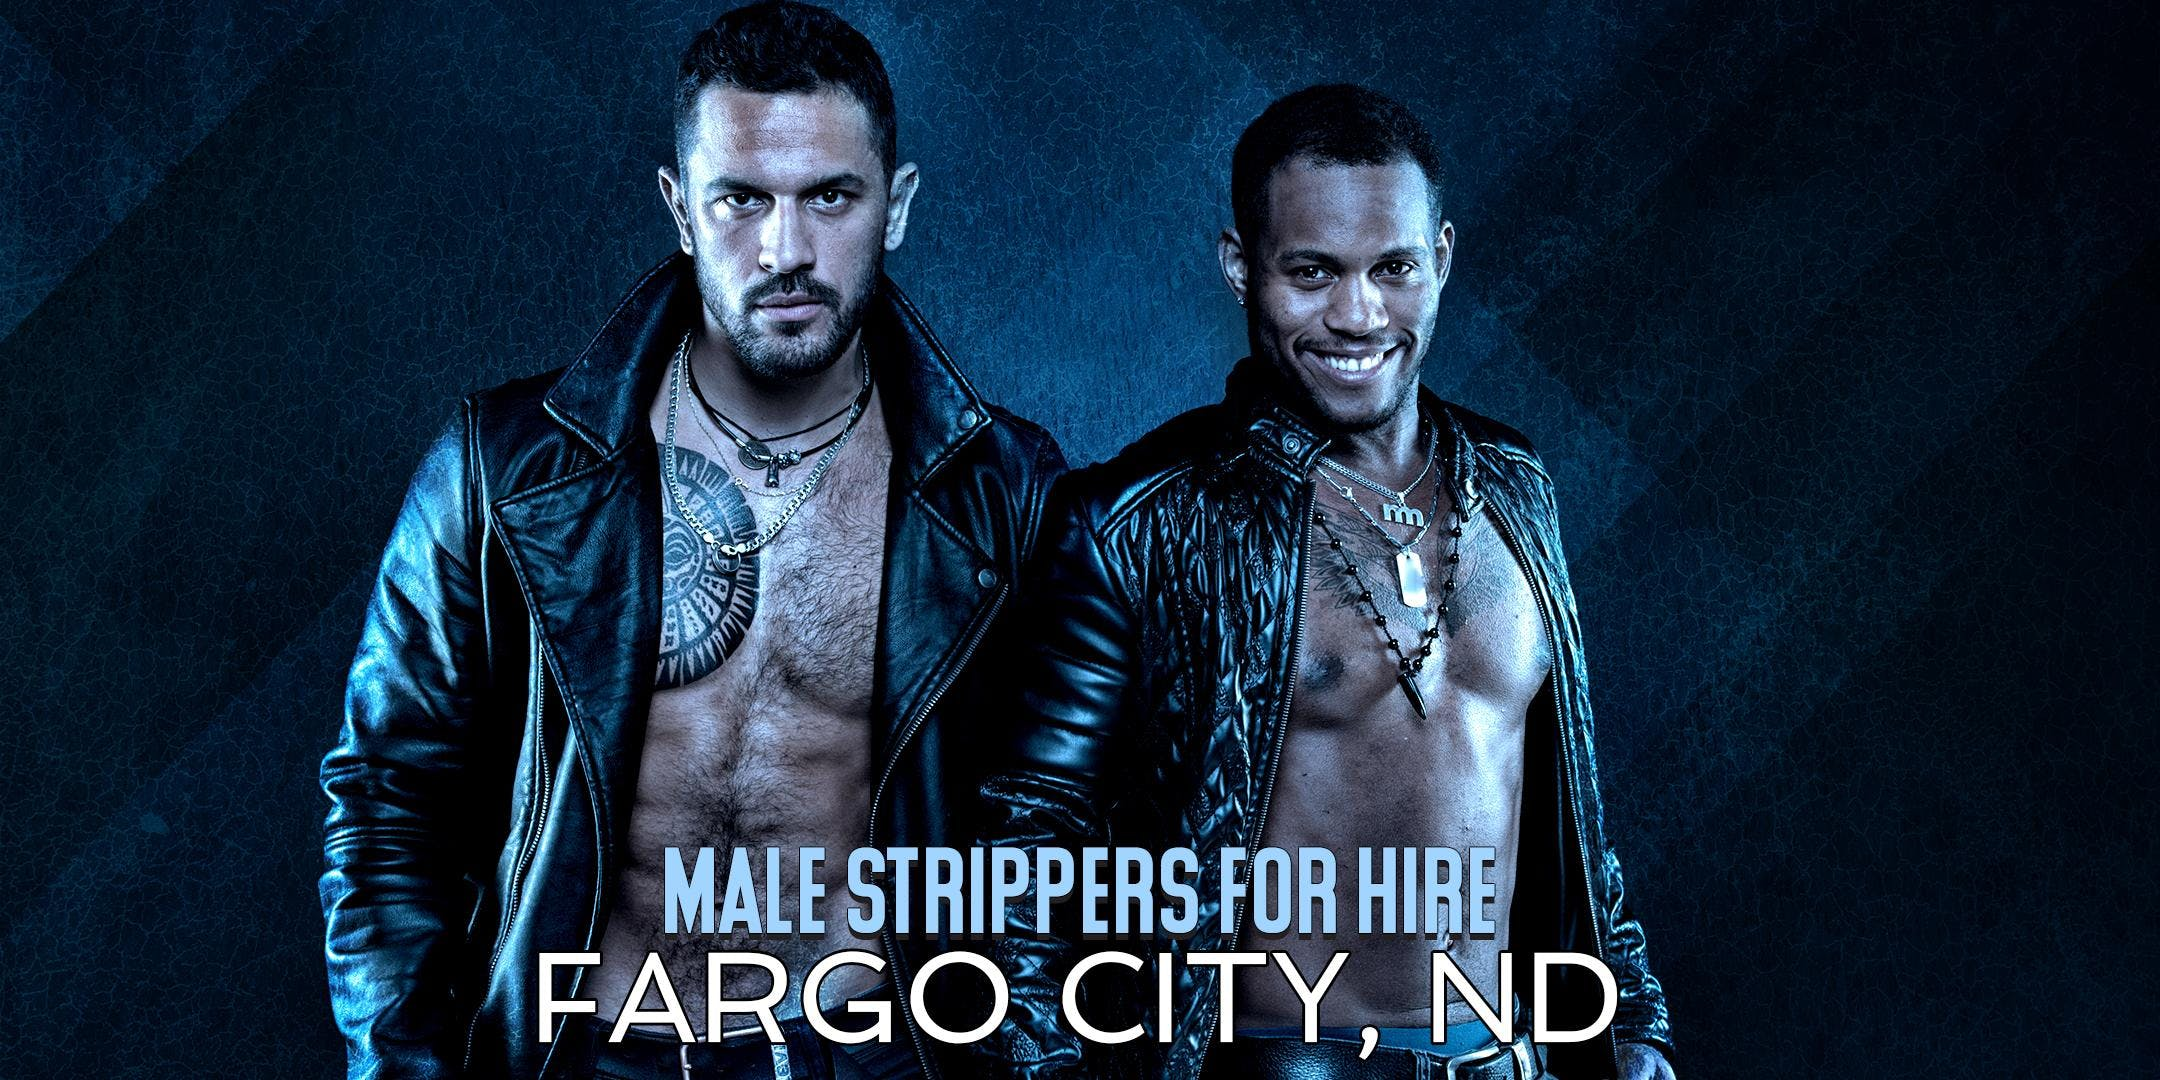 Hire a Male Stripper  Fargo, ND - Private Party Male Strippers for Hire Fargo